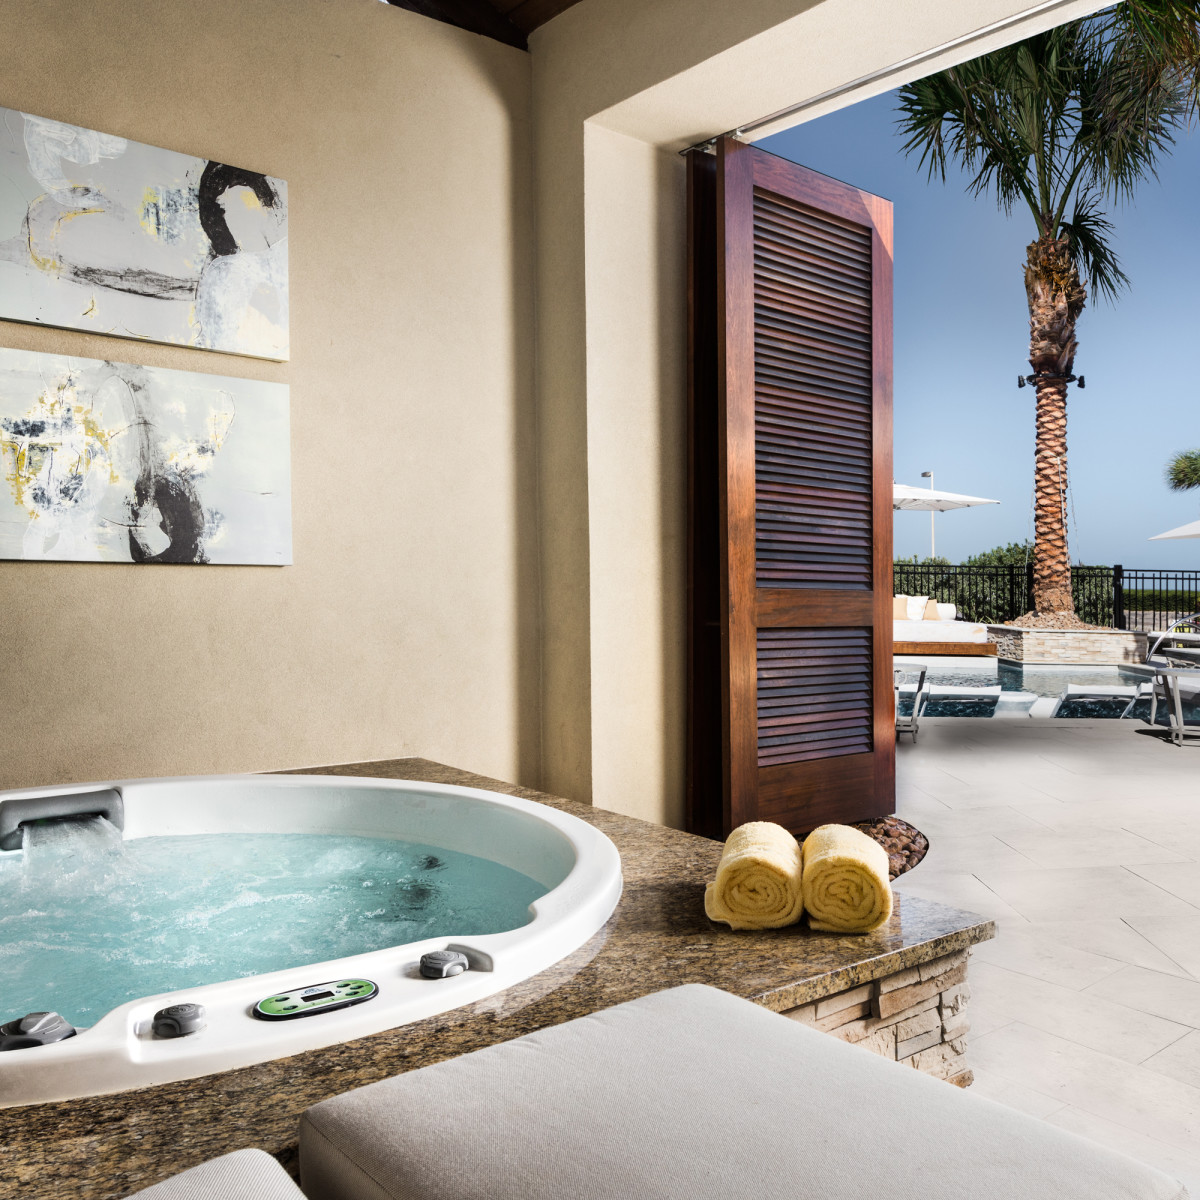 The Villas at San Luis hot tub